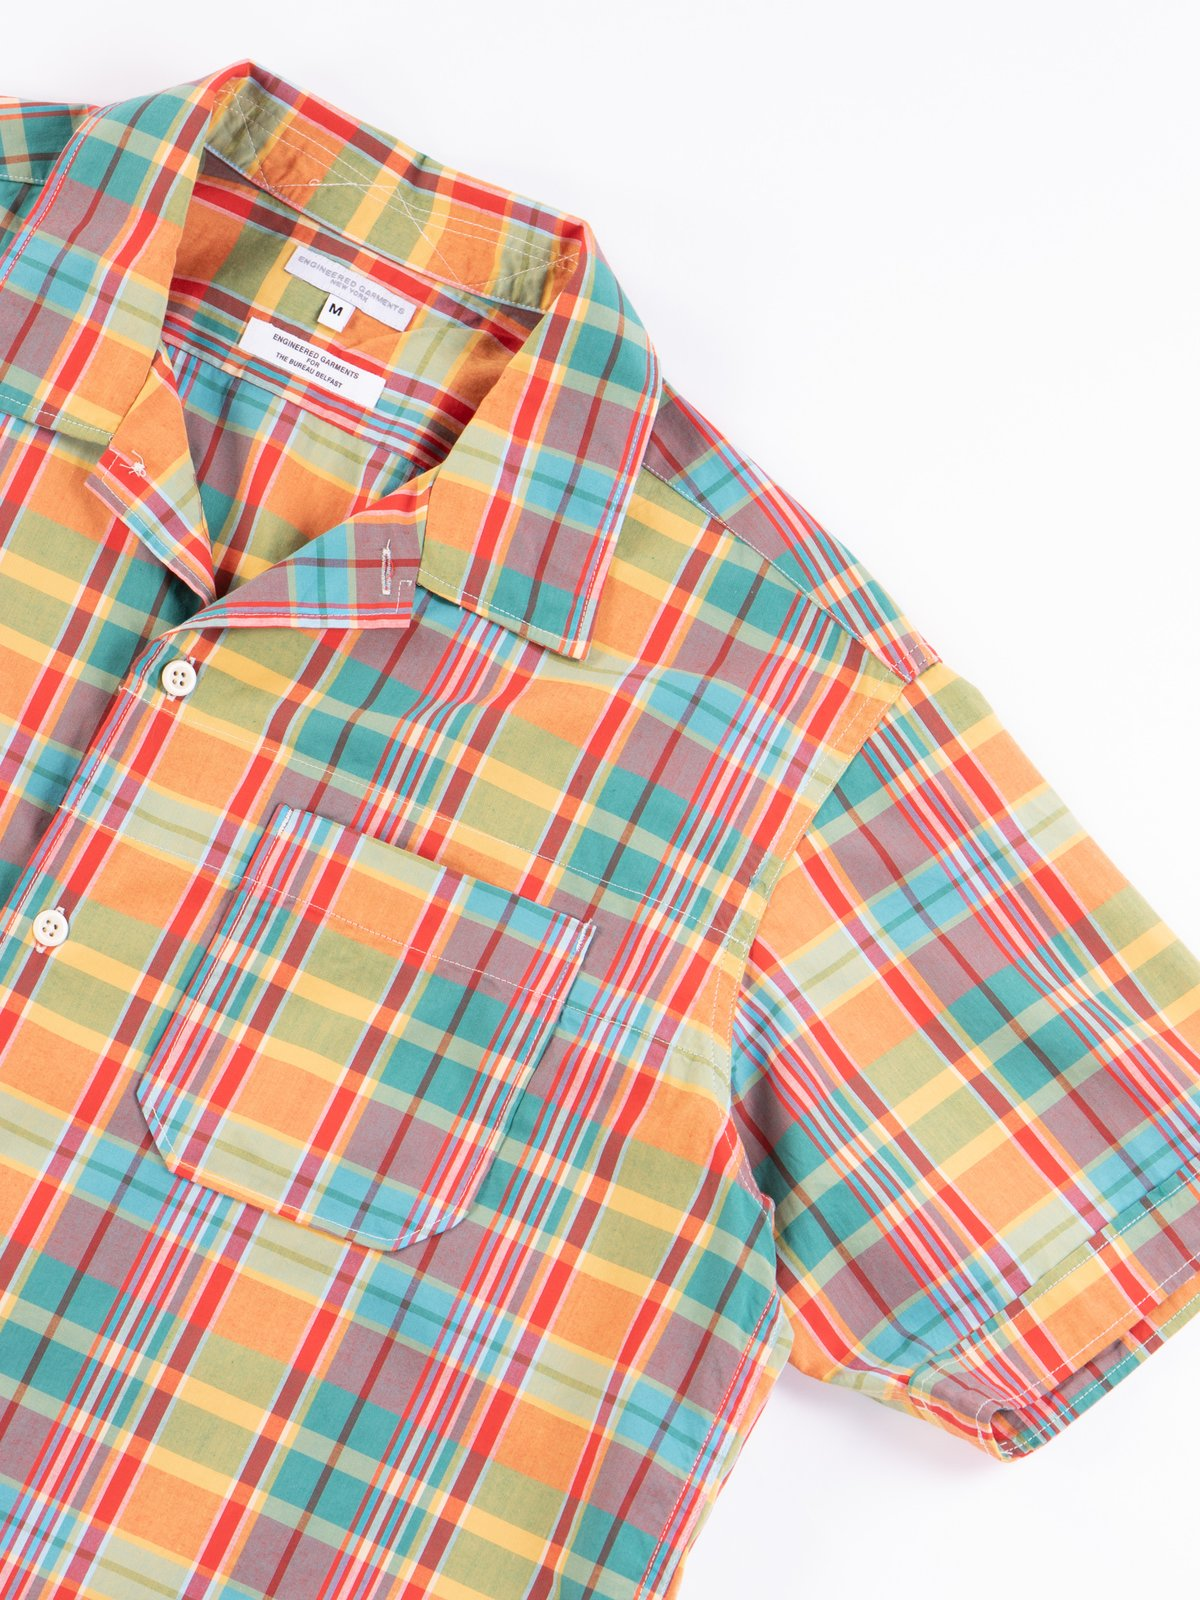 Orange Plaid Cotton Broadcloth Camp Shirt - Image 5